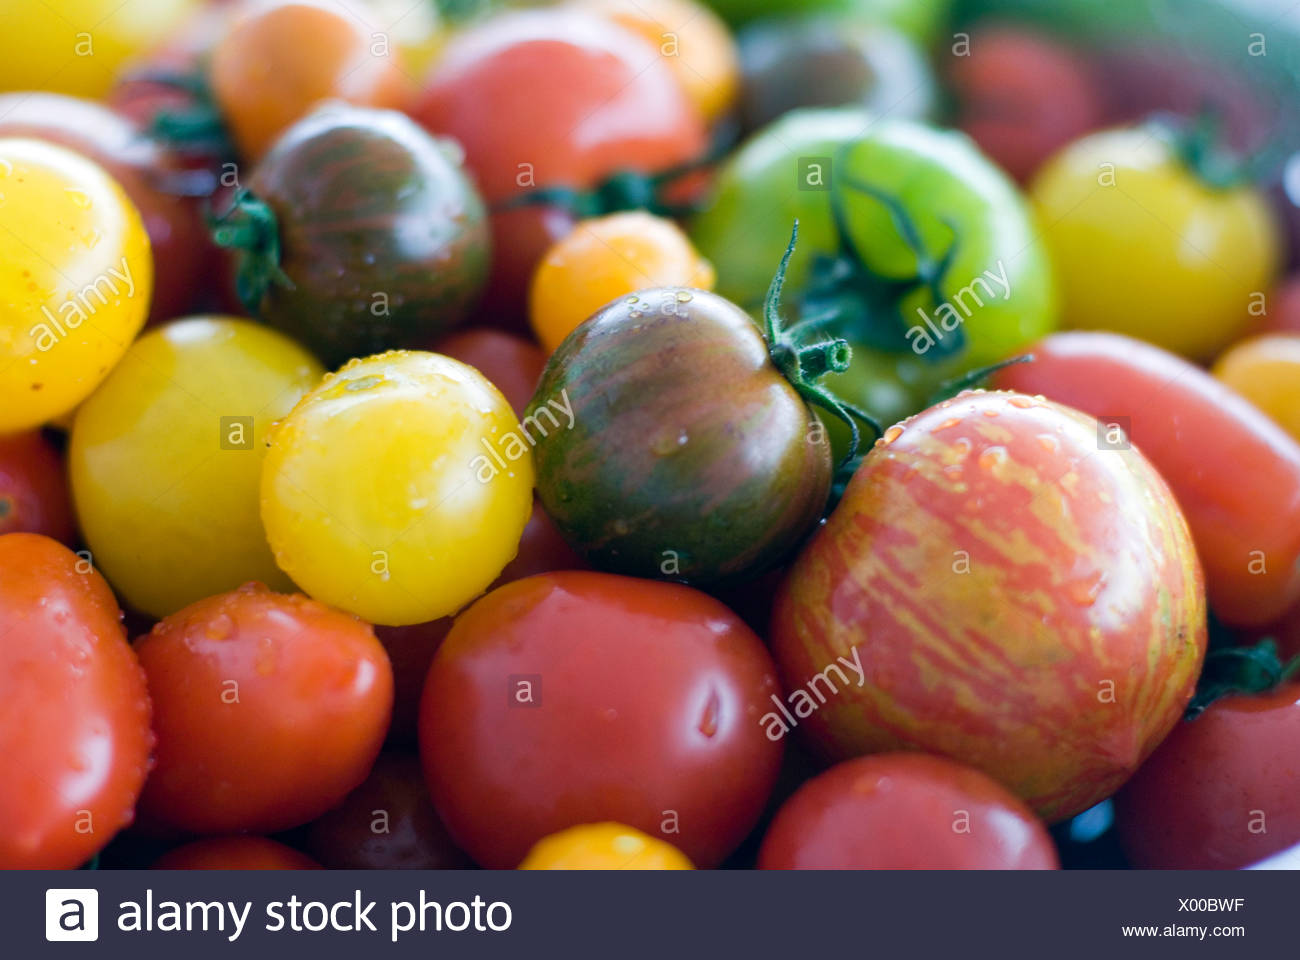 Tomato mixed varieties - Stock Image